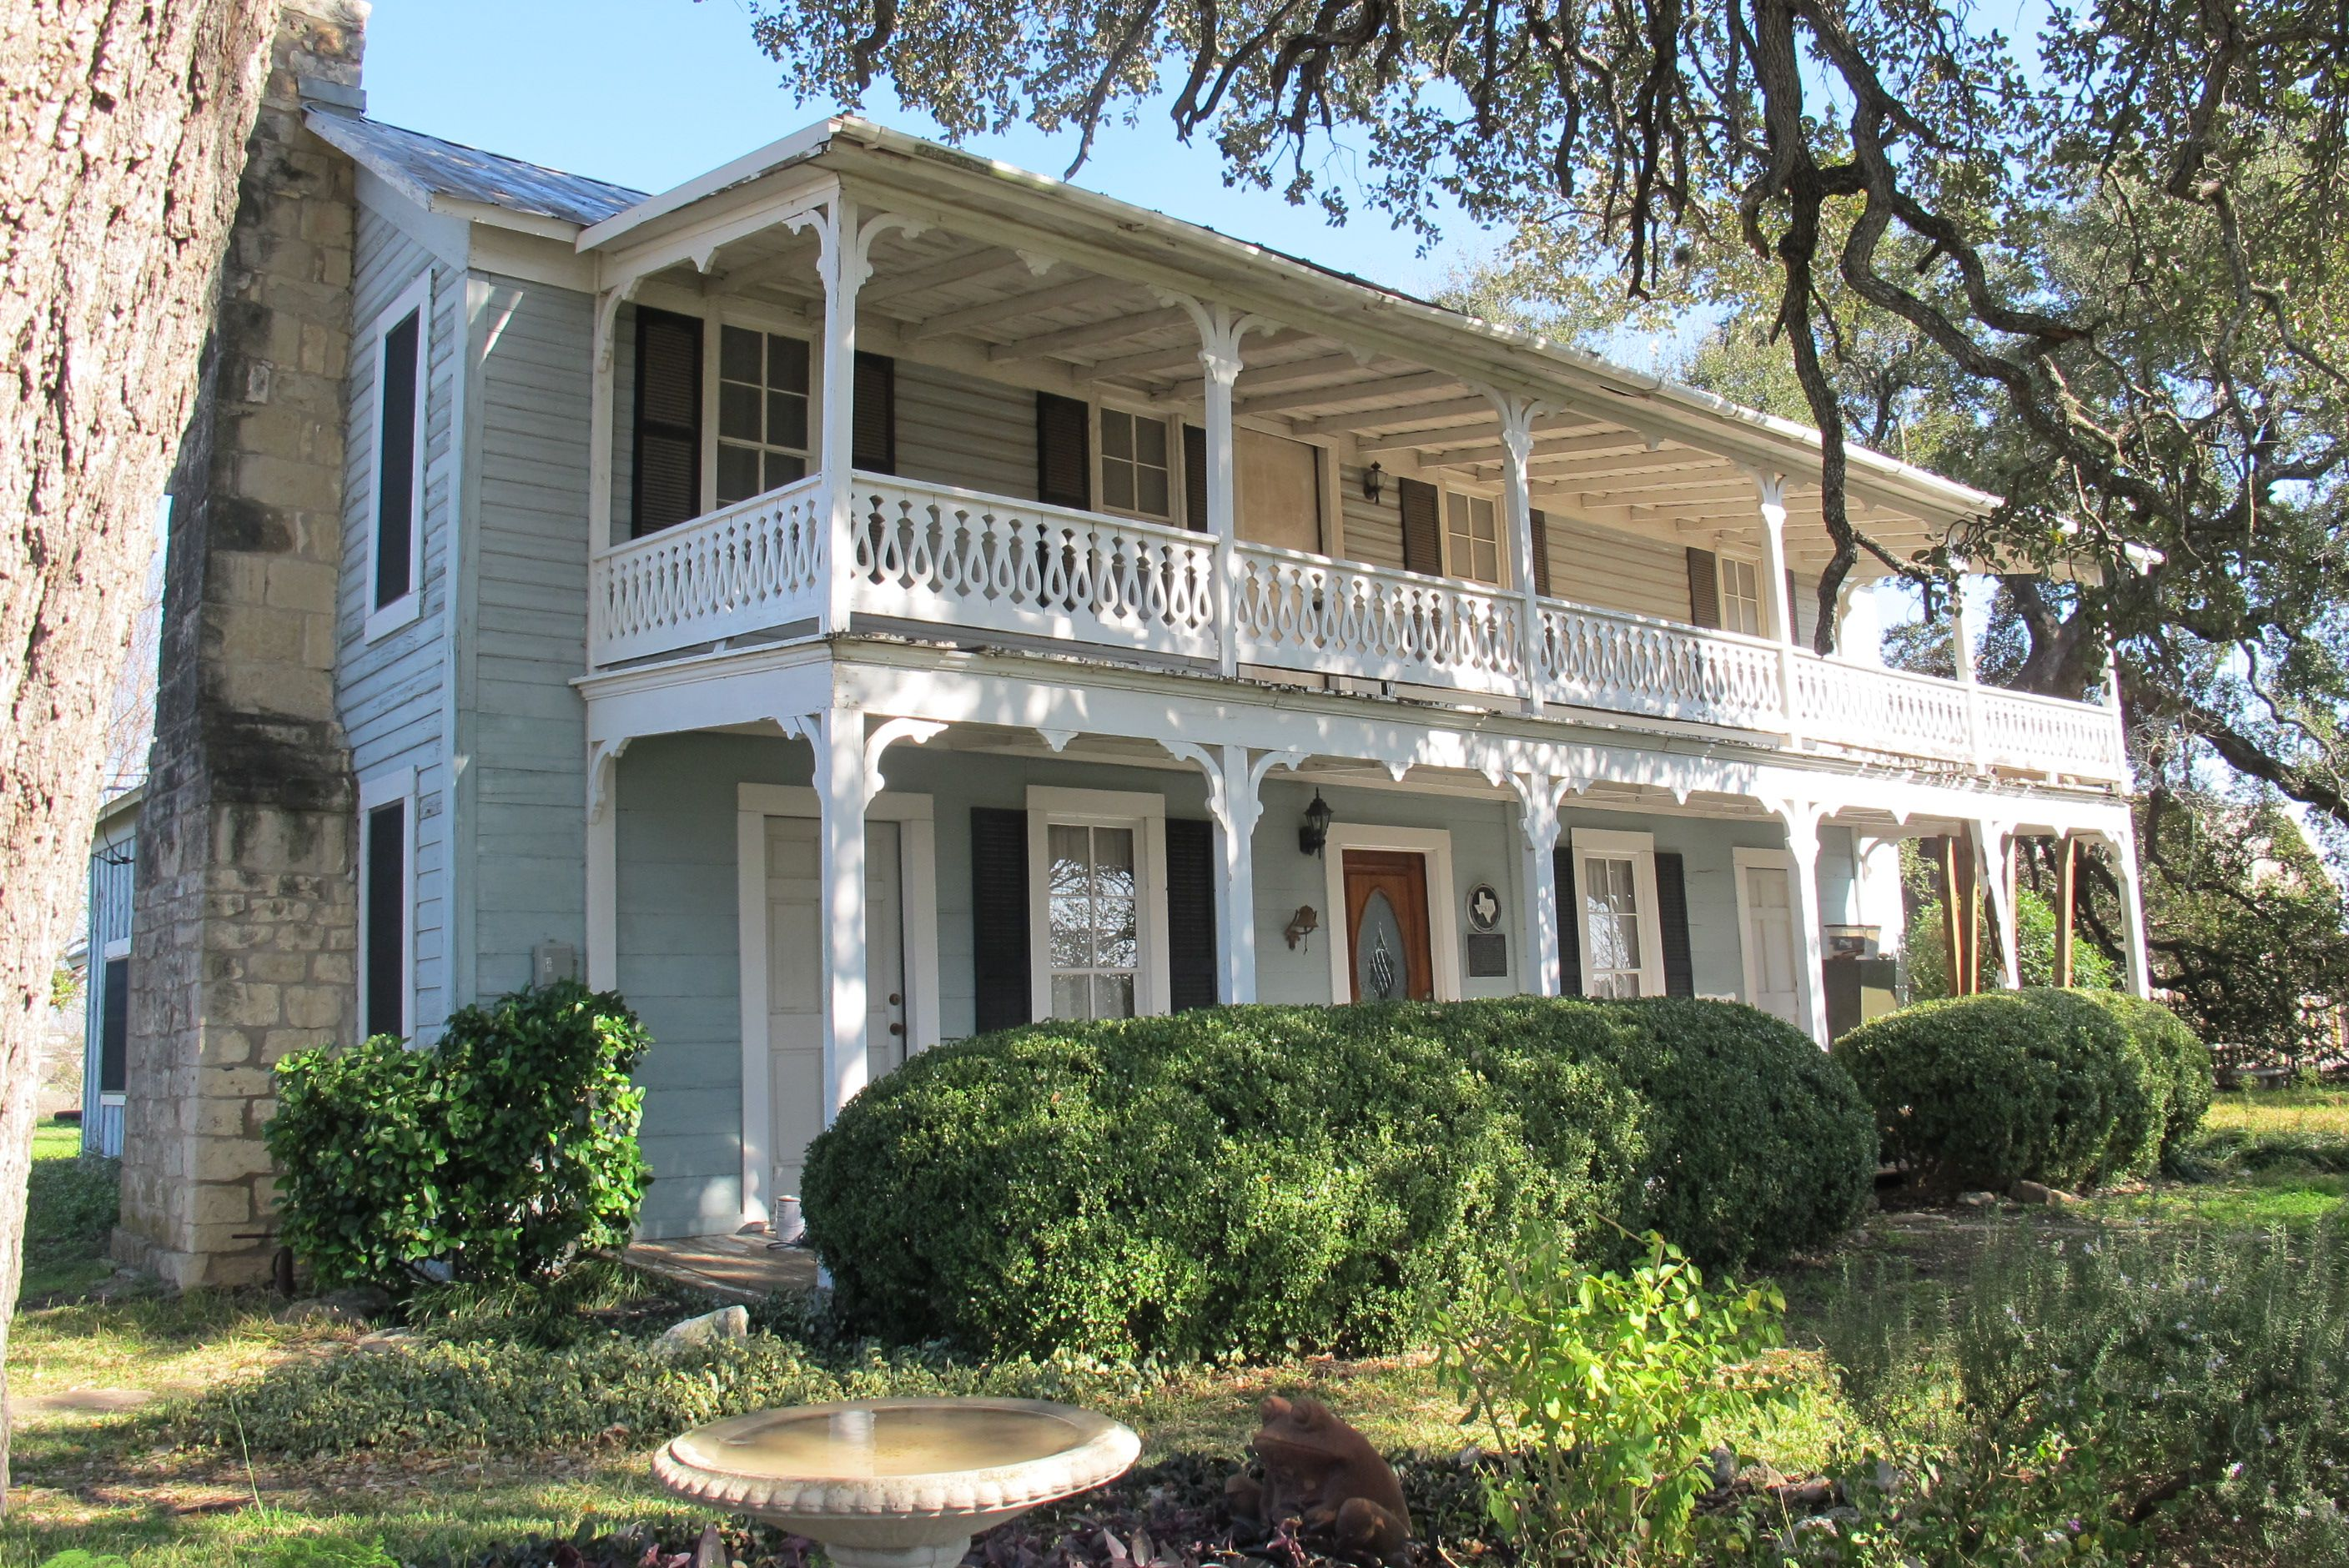 The A.S Mason Historic Home at 600 Bagdad Rd S Leander TX